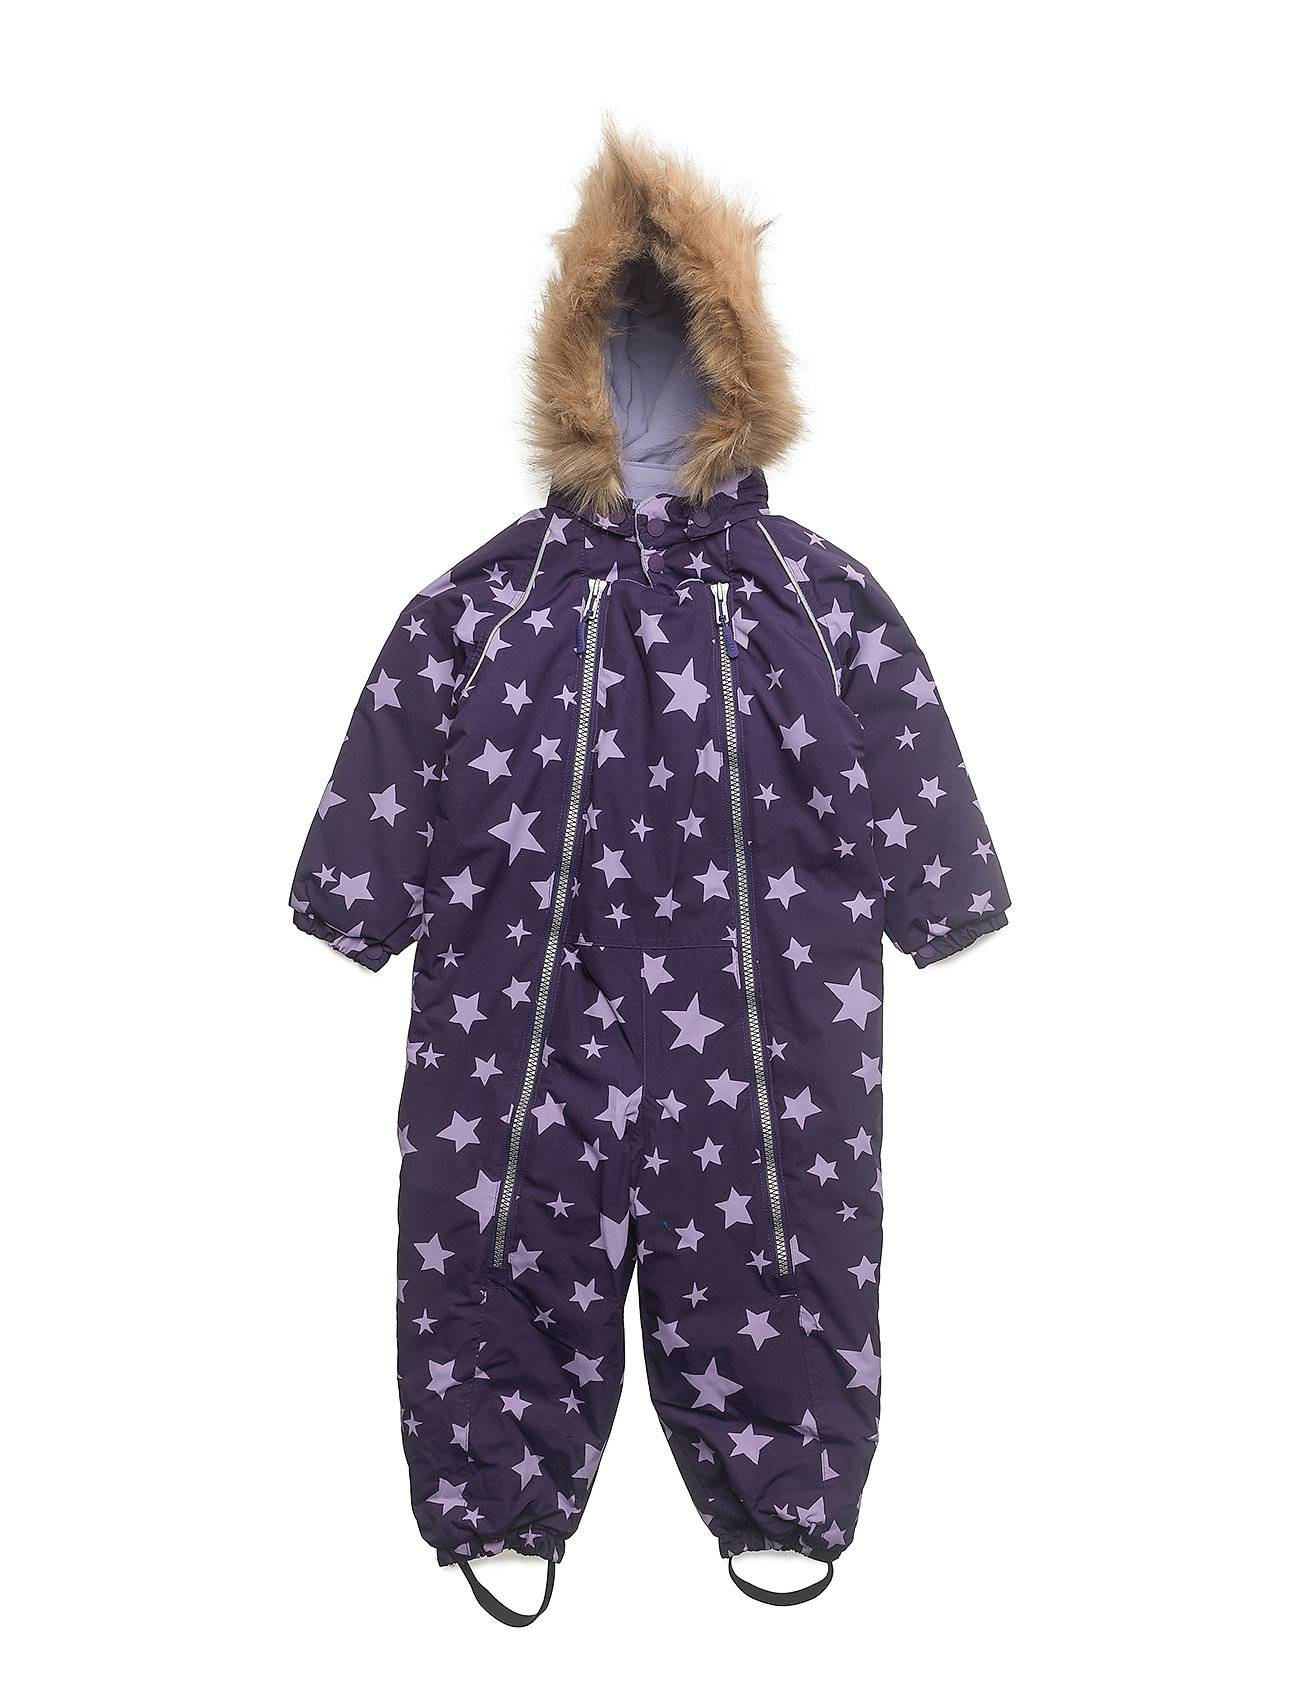 Ticket to Heaven Baggie Snowsuit With Detachable Hood Allover